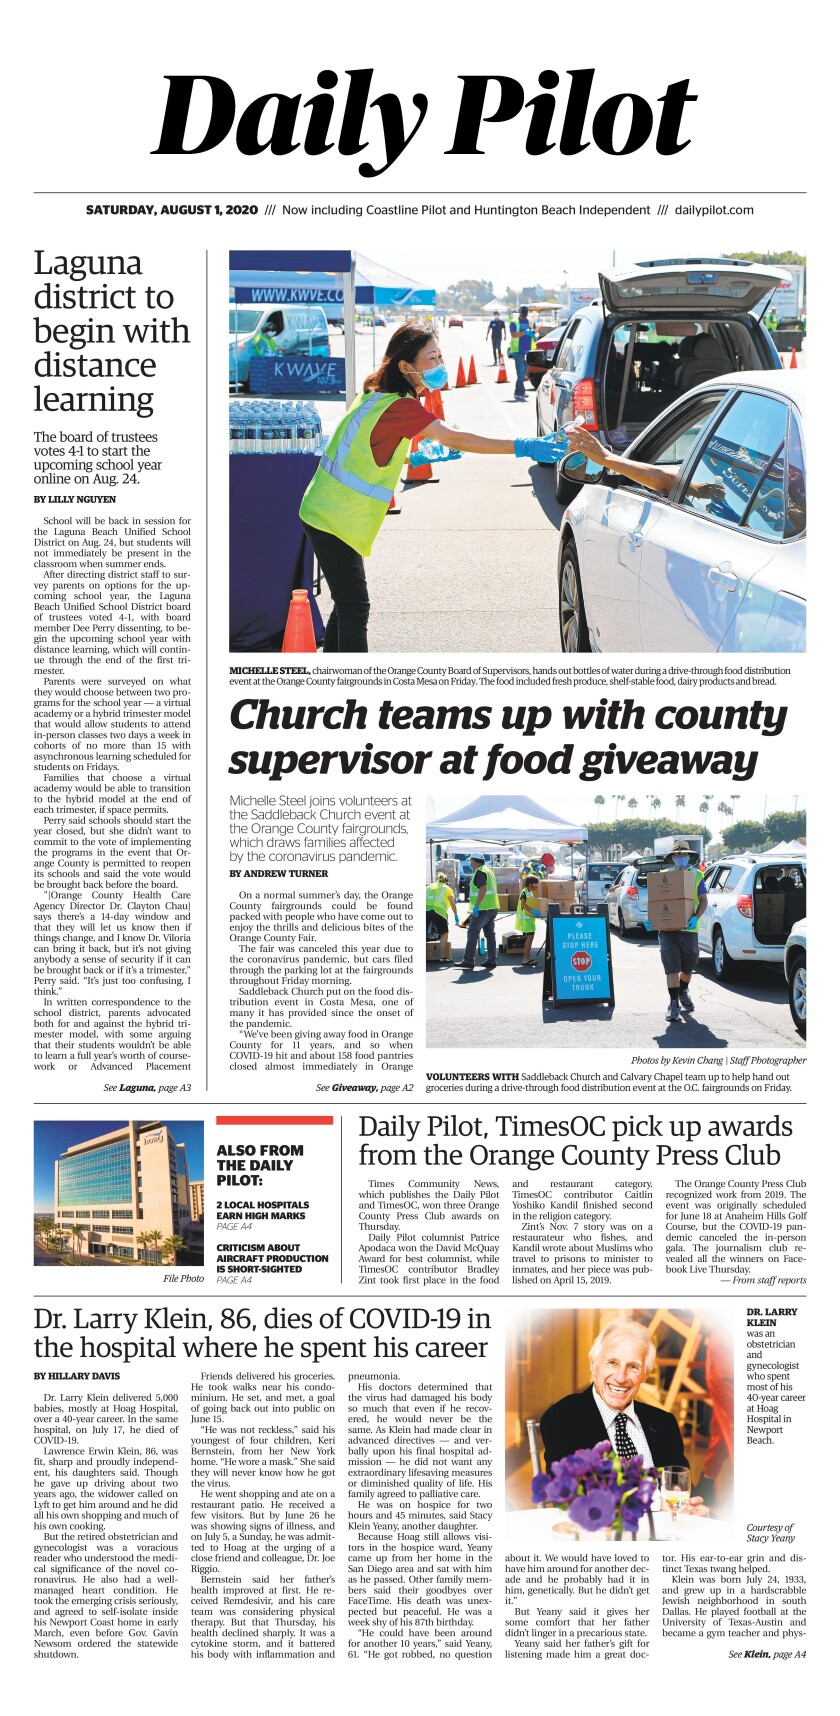 Saturday's Daily Pilot cover.